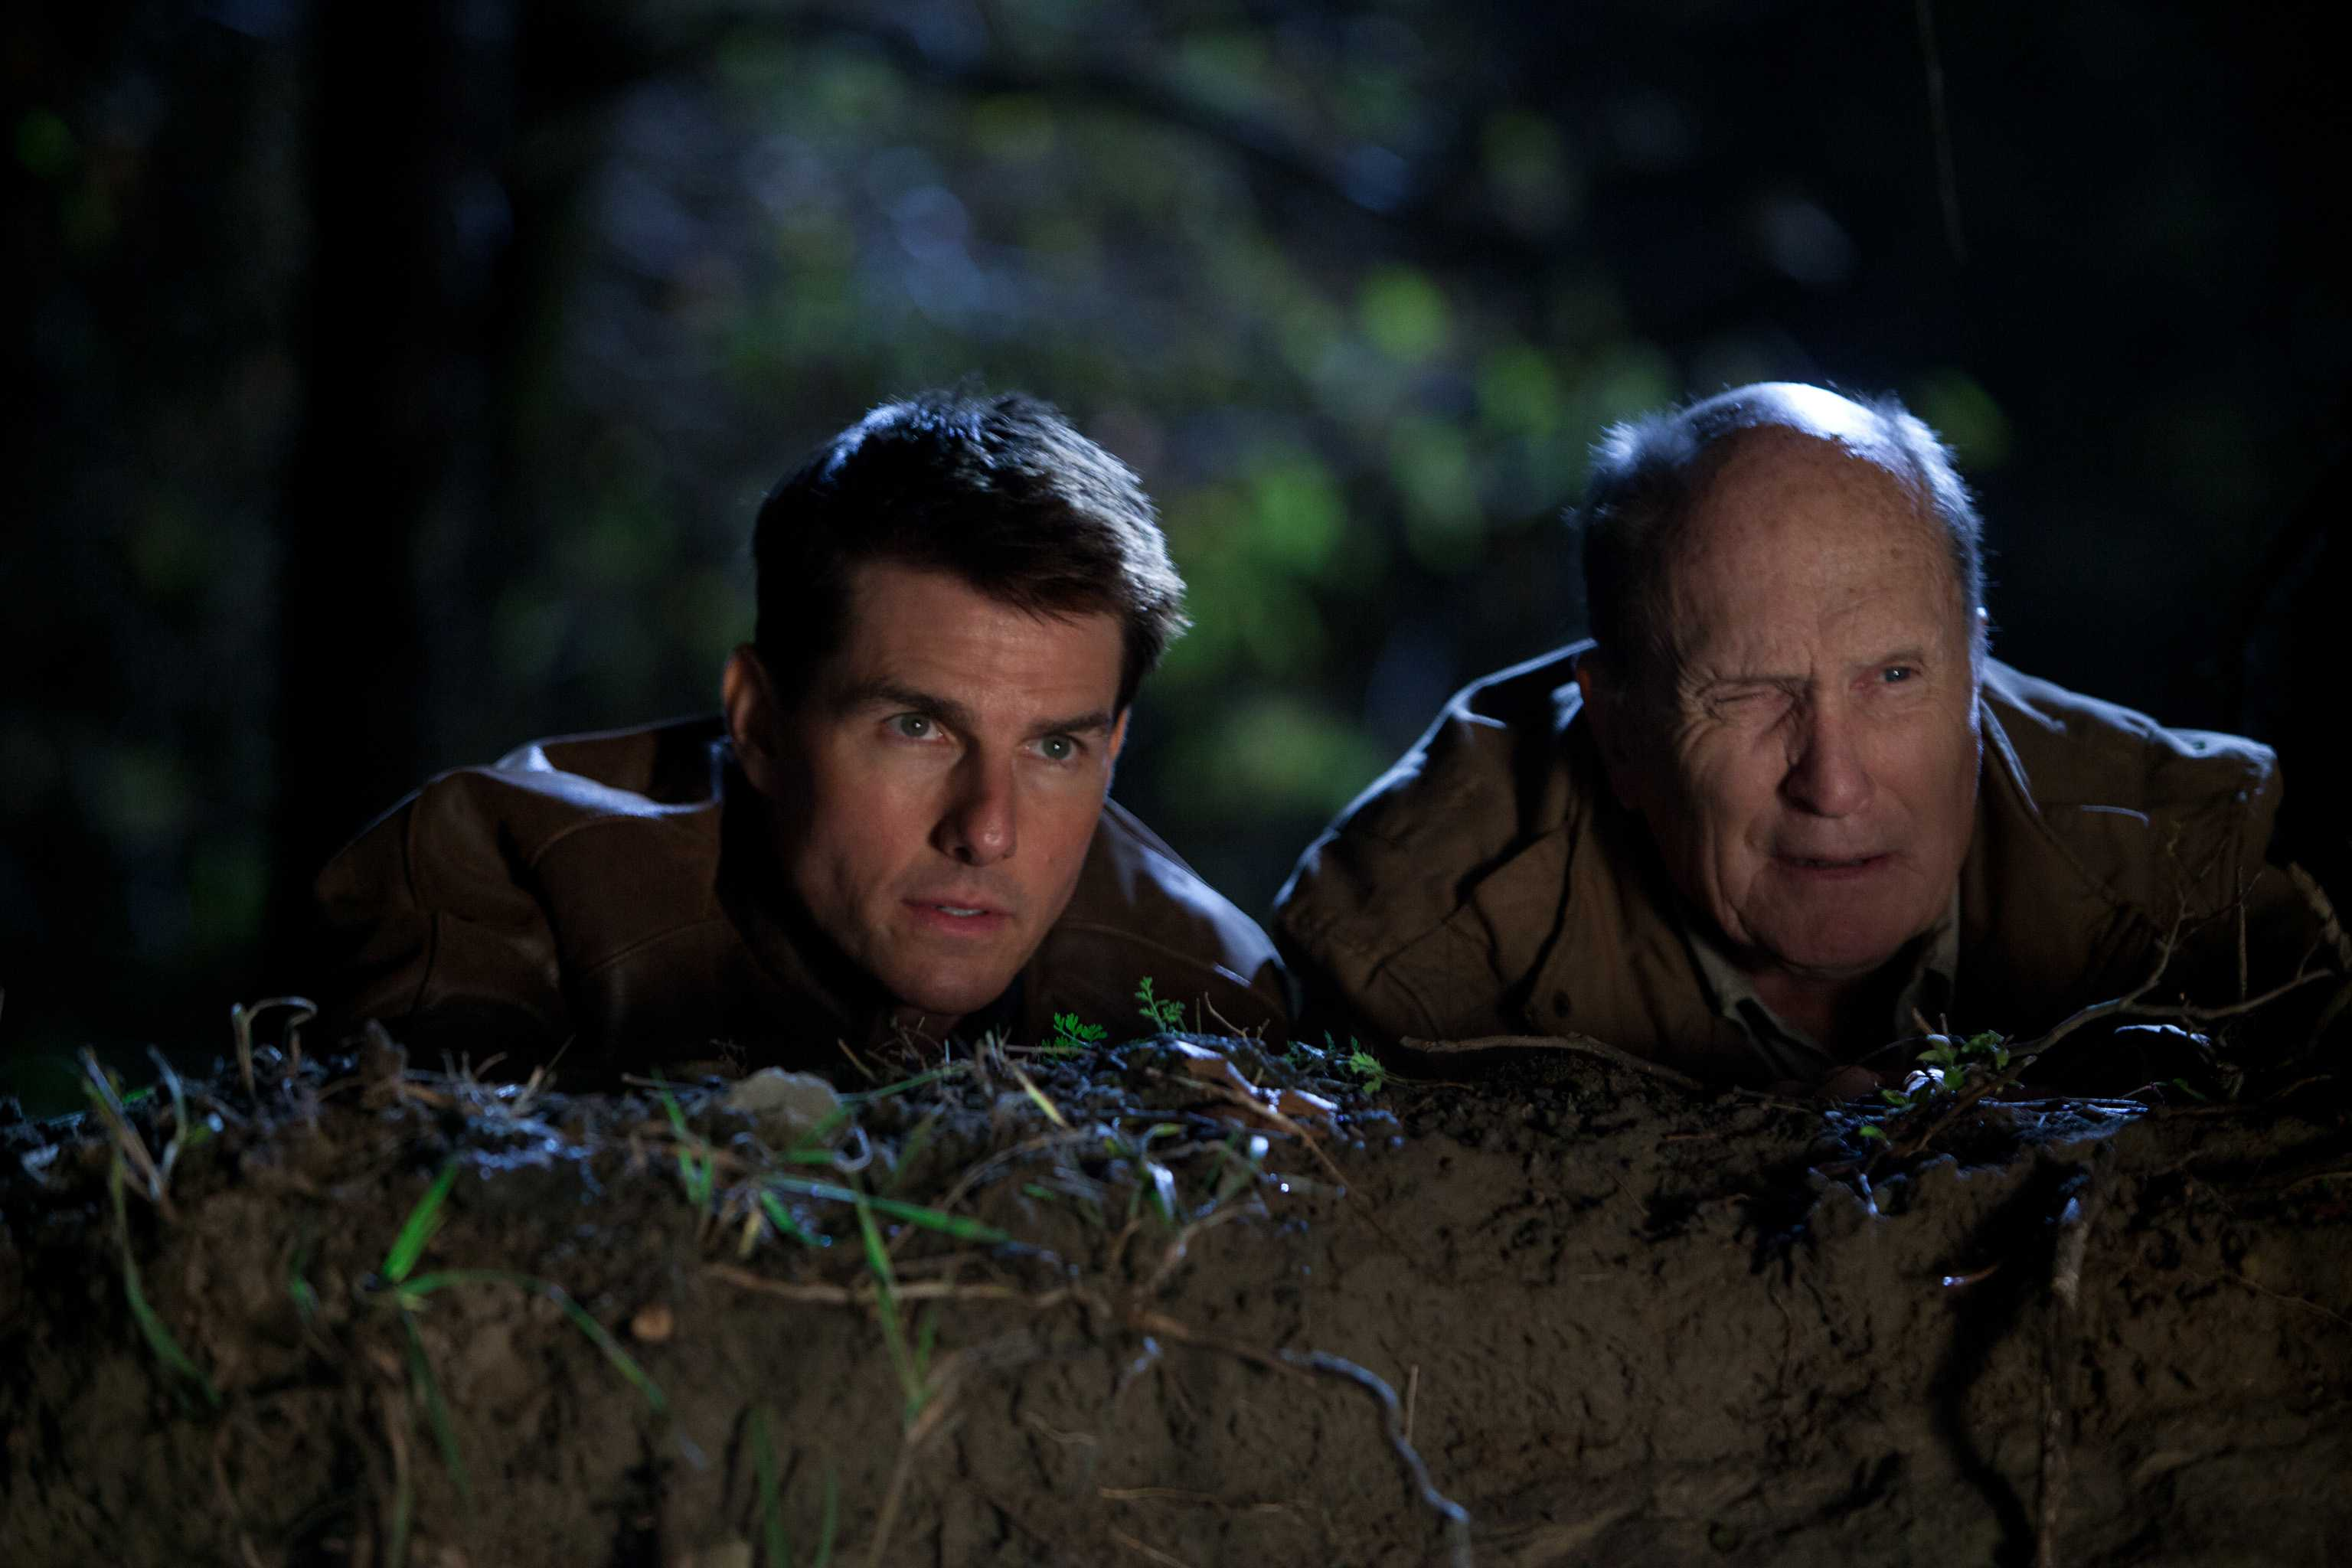 Tom Cruise, left, is Reacher and Robert Duvall is Cash in